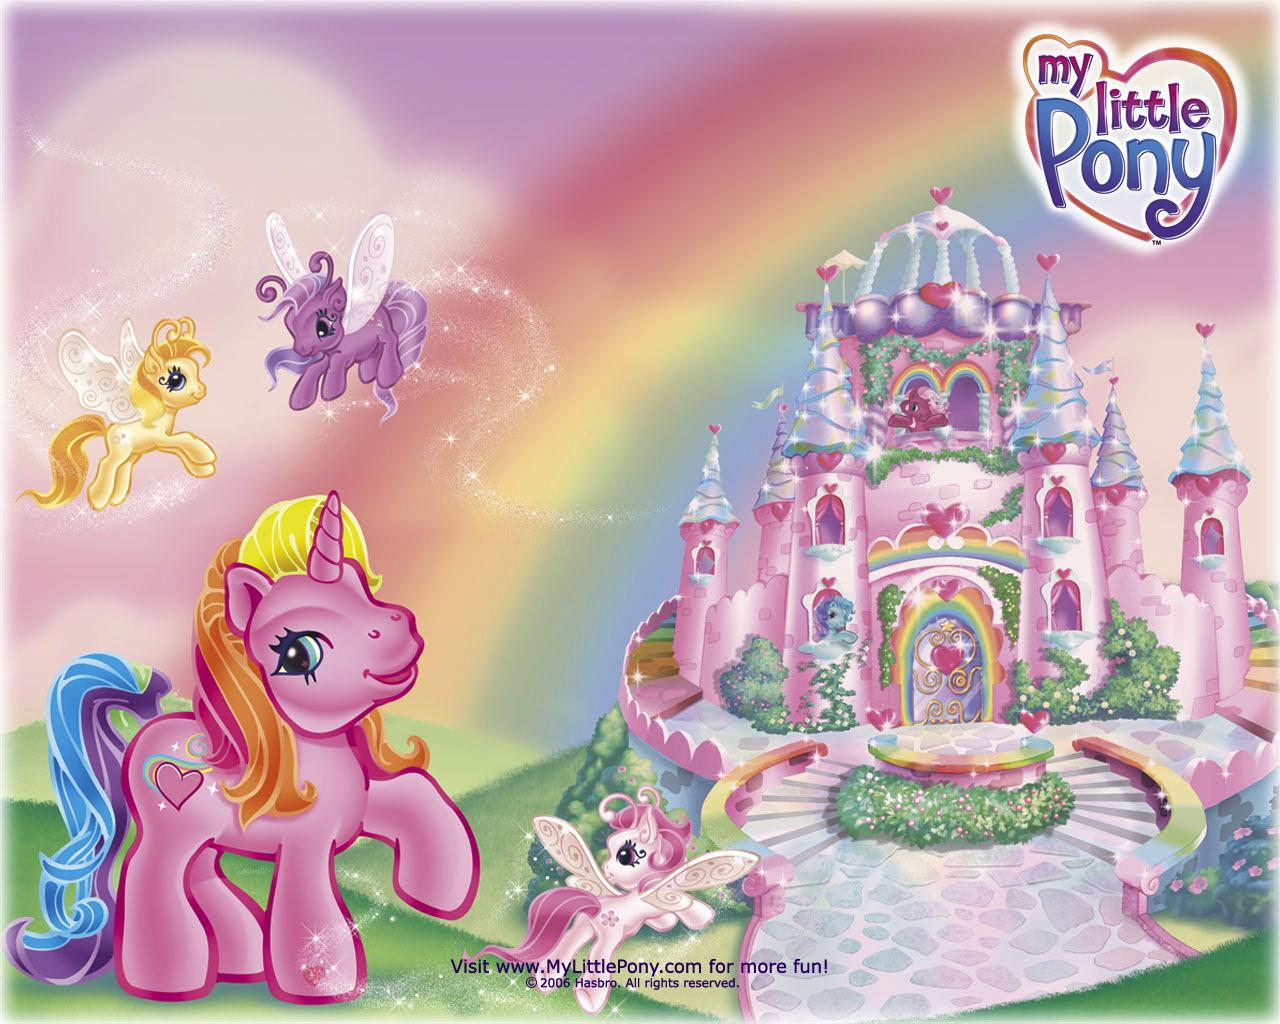 My Little Pony My Little Pony